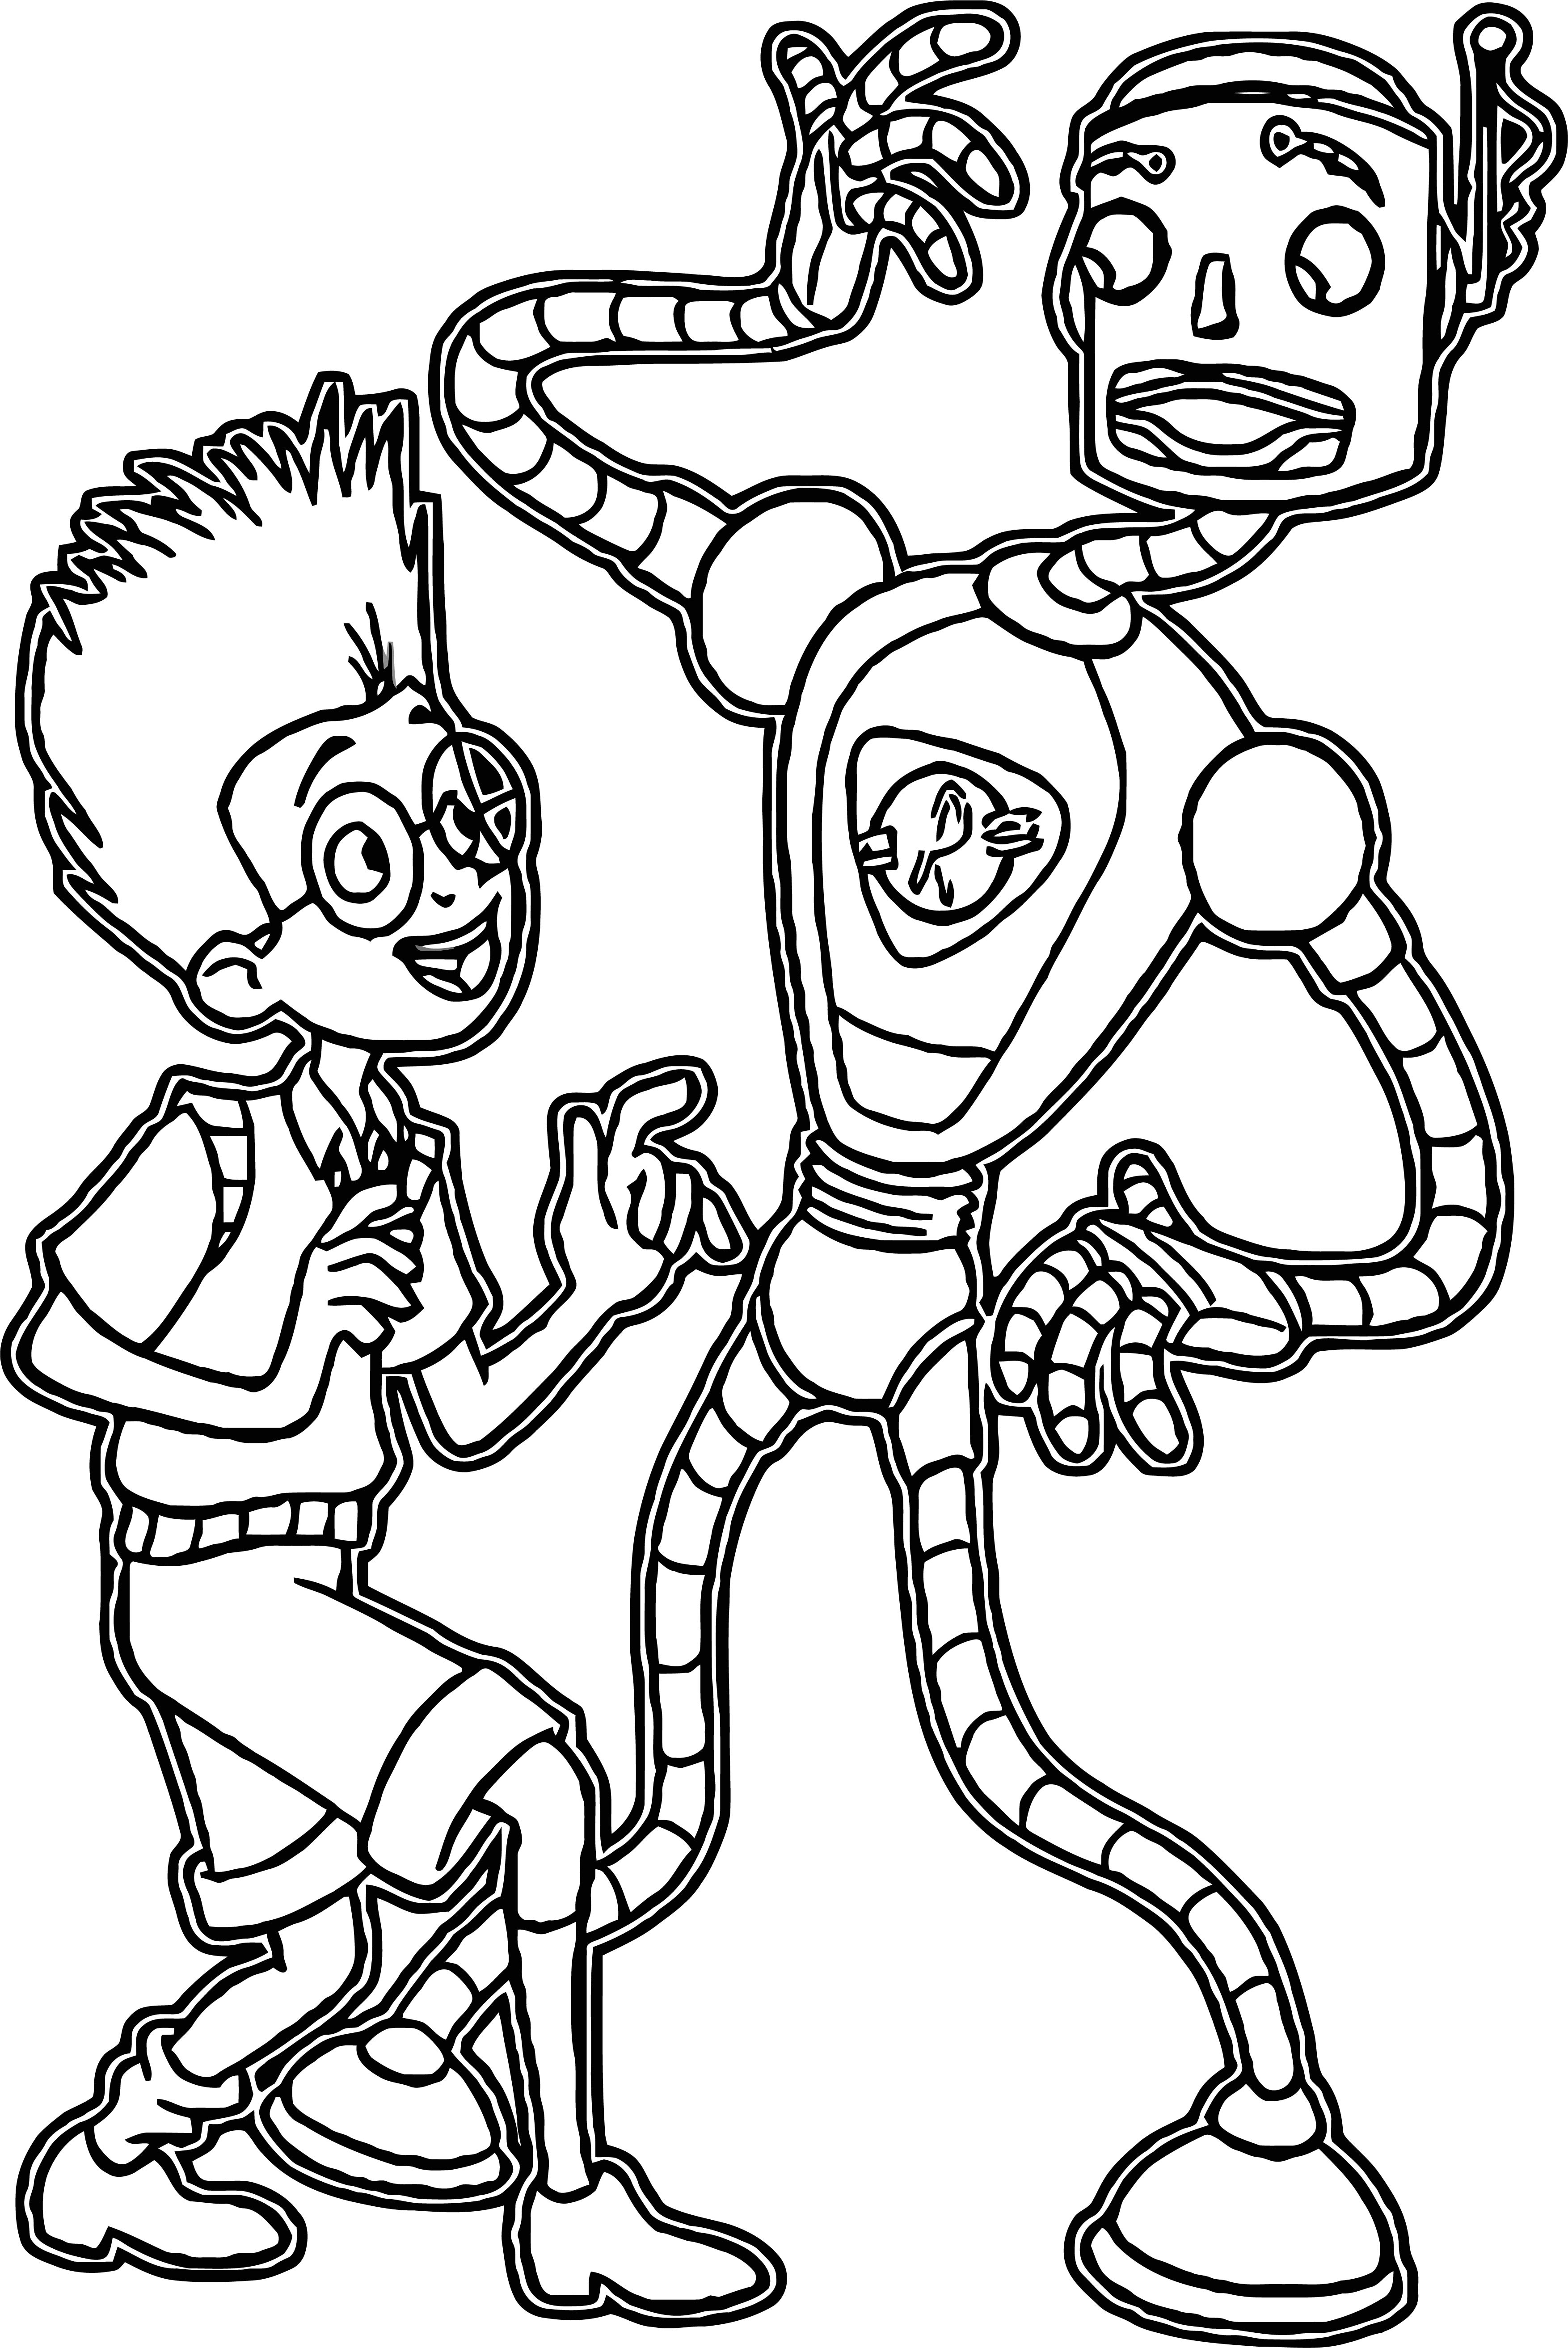 Meet The Robinsons Coloring Page 10